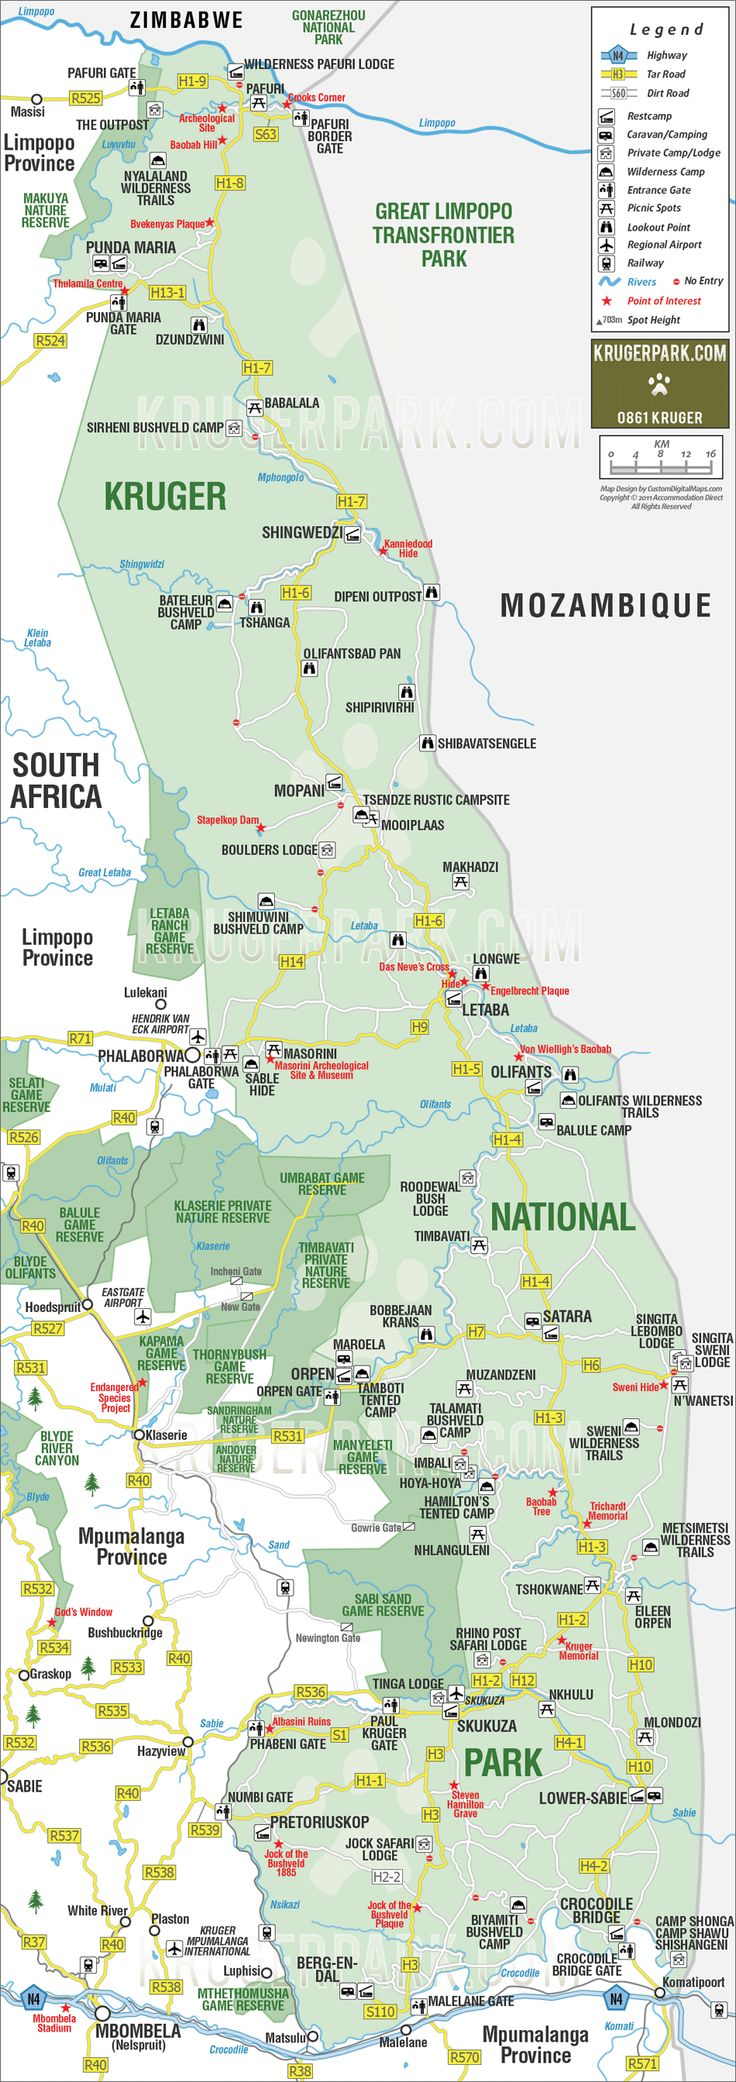 Kruger Park Maps - Full map of the Kruger National Park